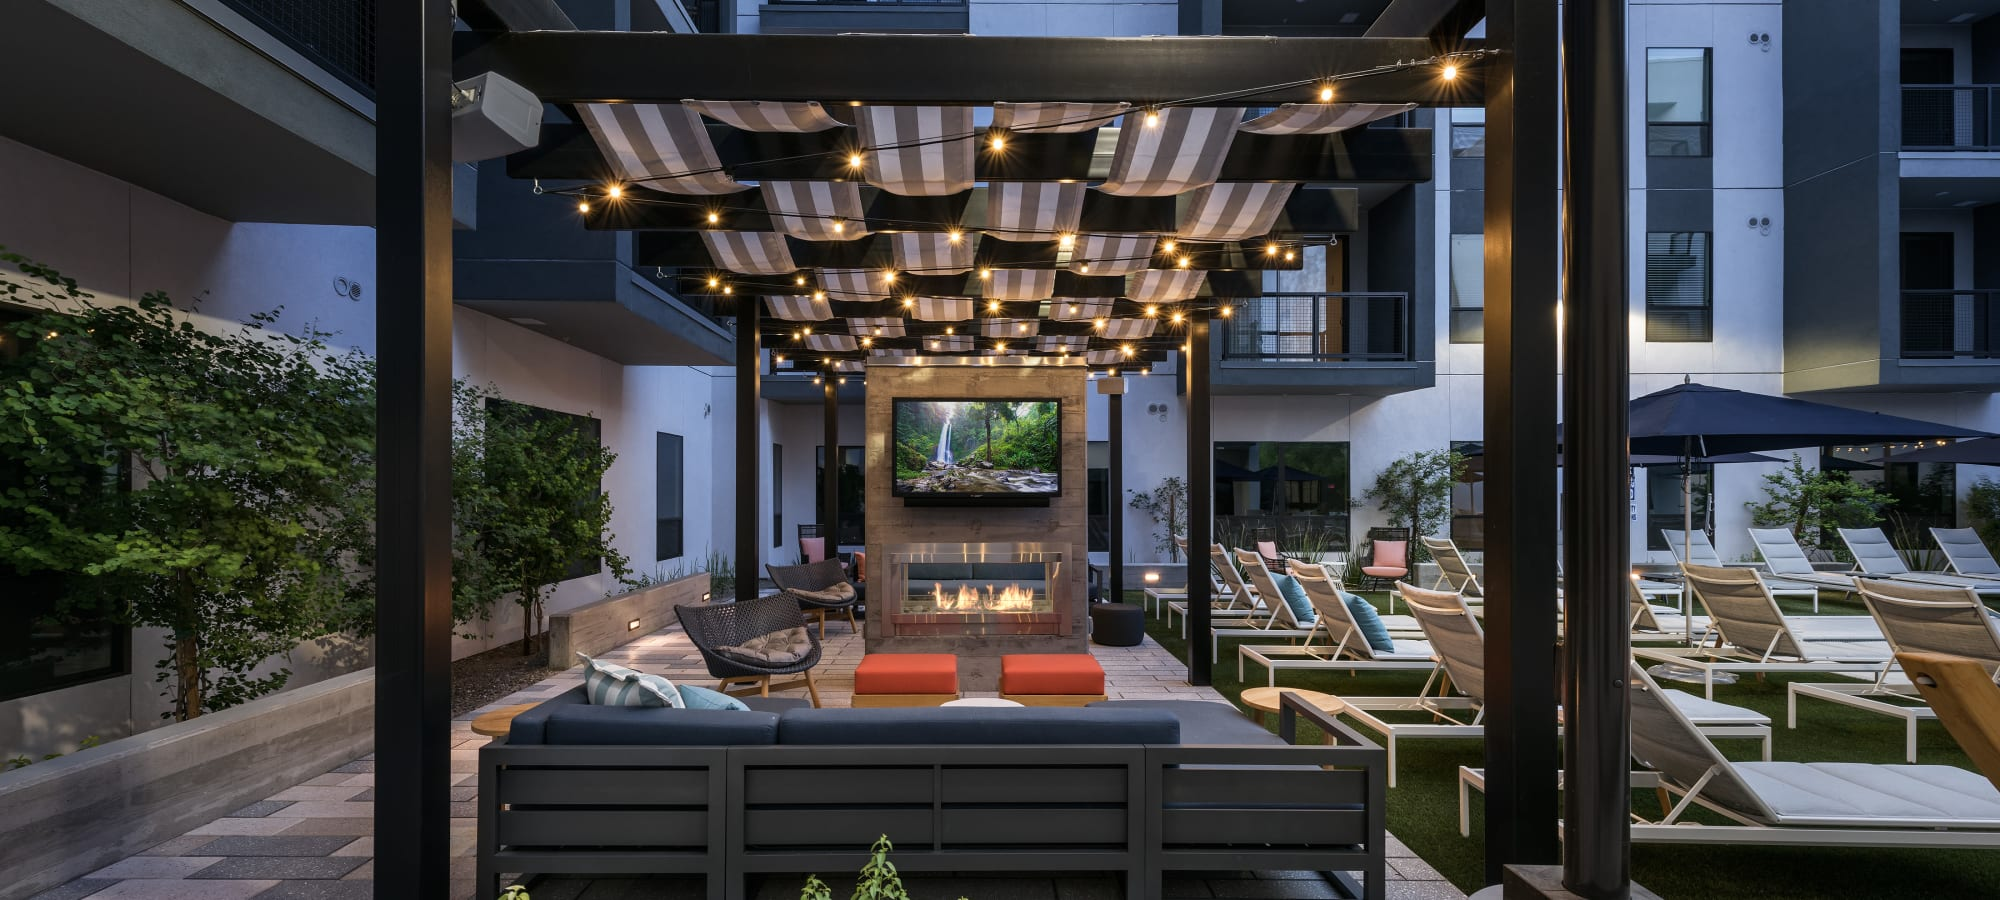 Open covered outdoor seating area with fireplace at The Astor at Osborn in Phoenix, Arizona